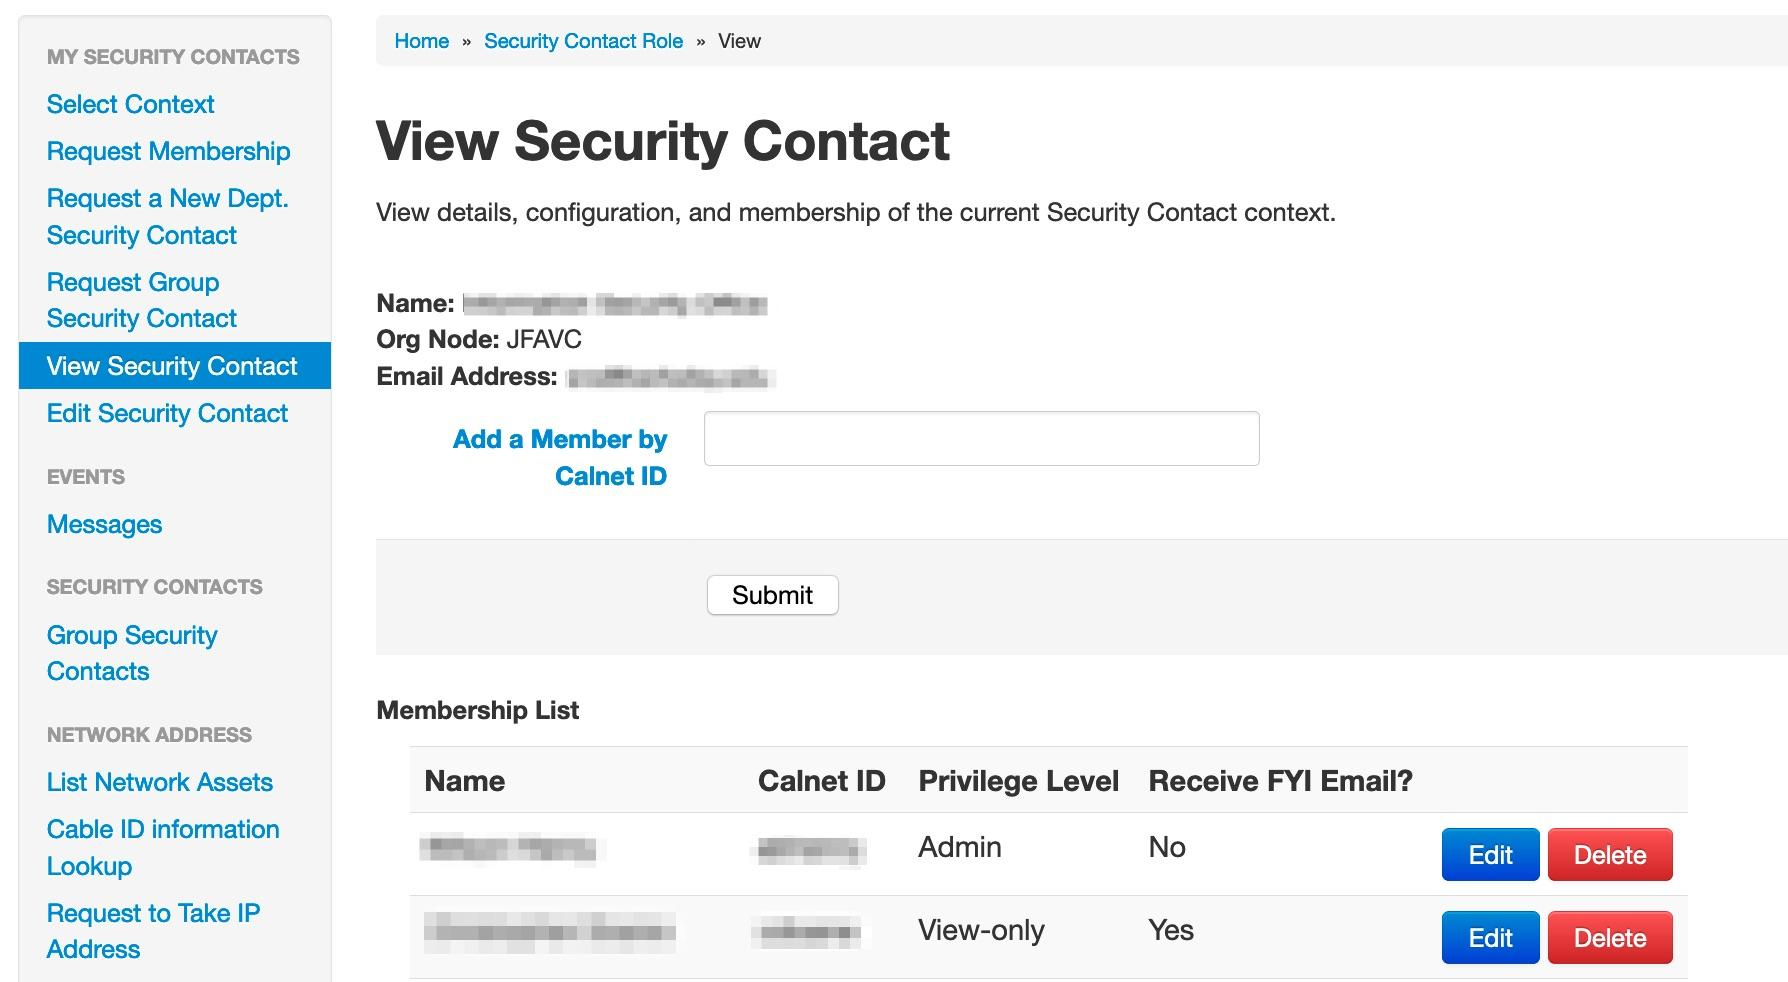 View Security Contact